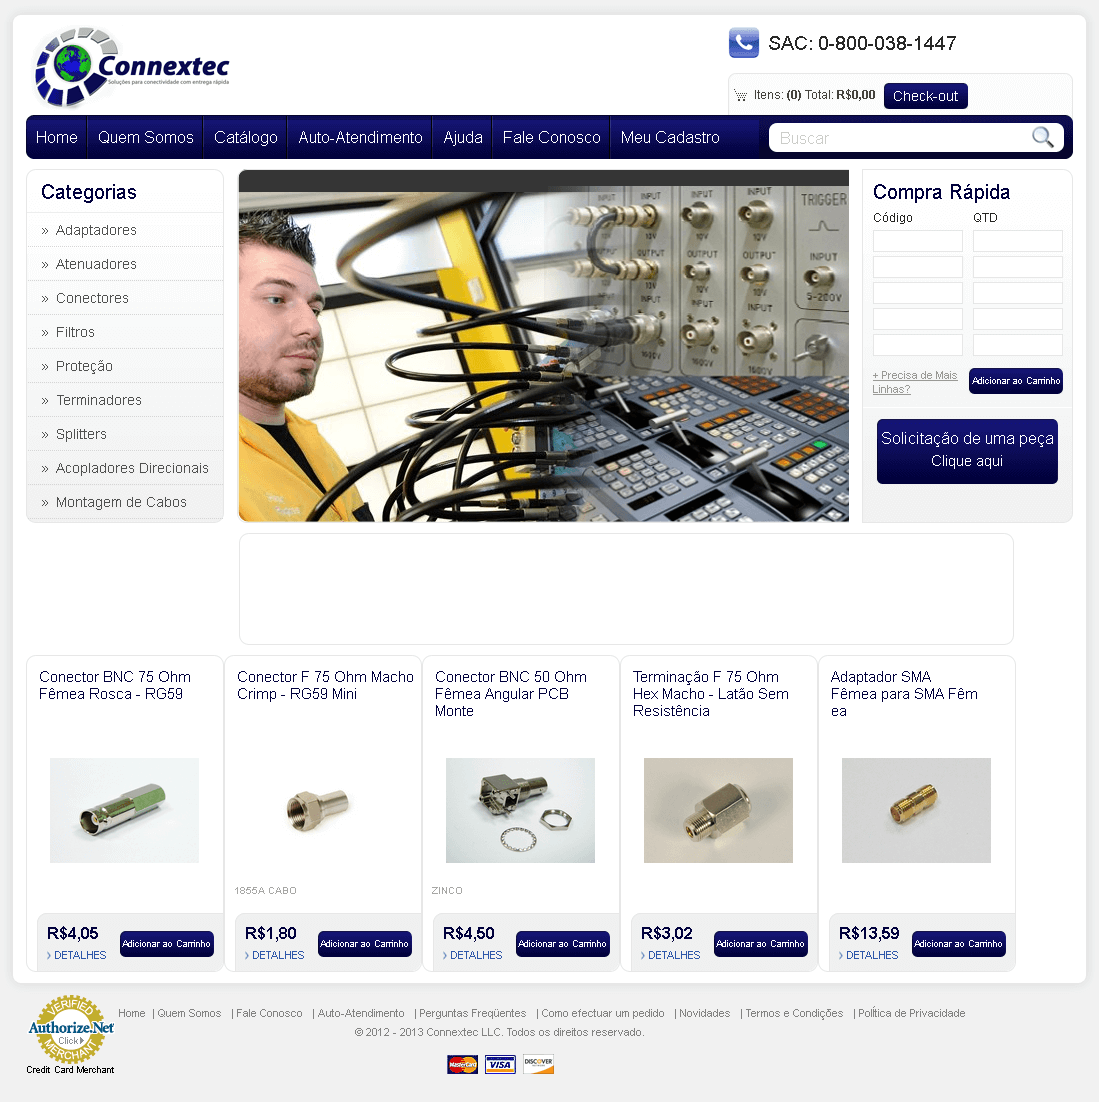 Website for RF Connectivity Solutions Provider 'Connextec' Using PHP